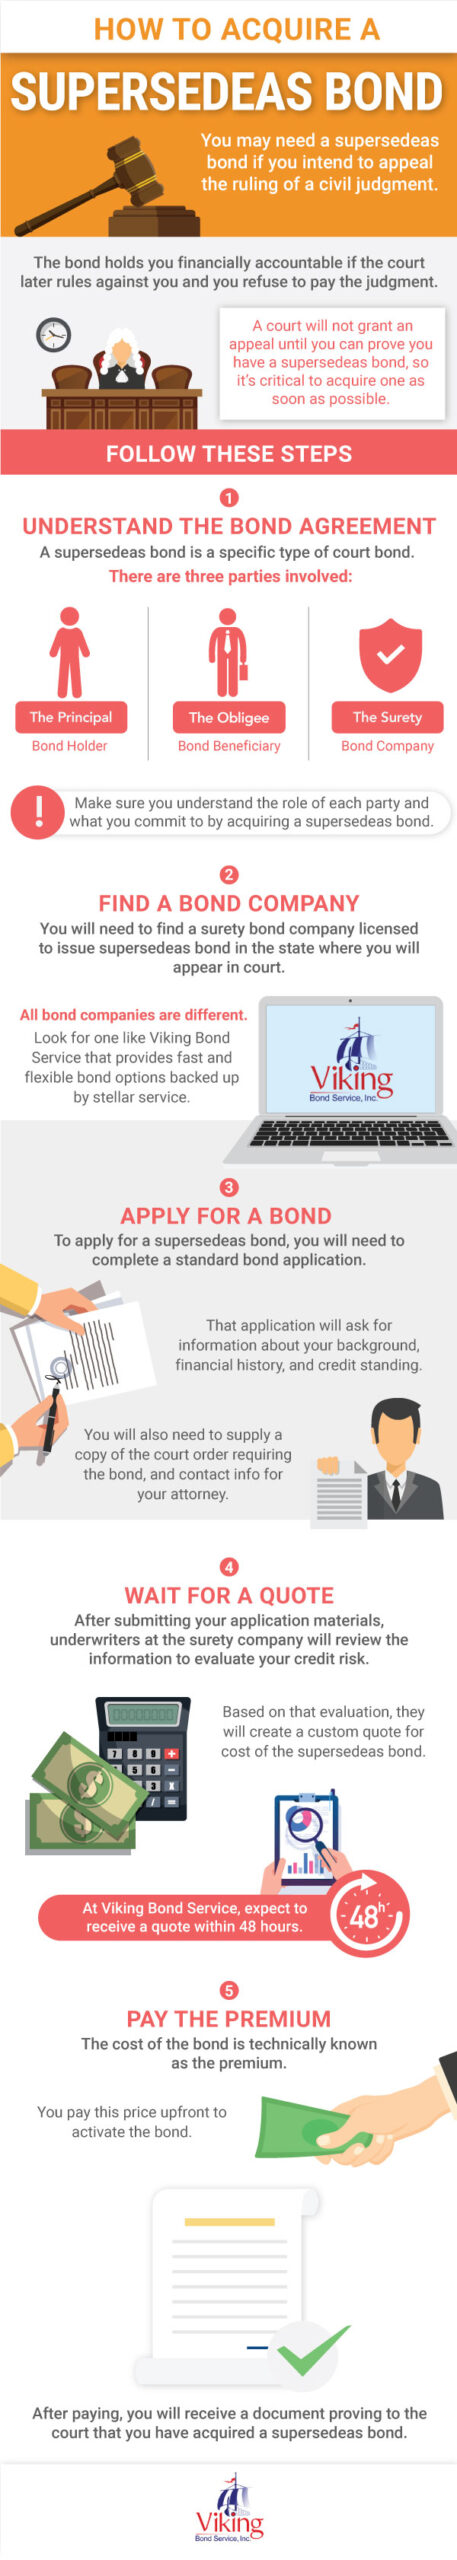 Infographic: How to Acquire a Supersedeas Bond